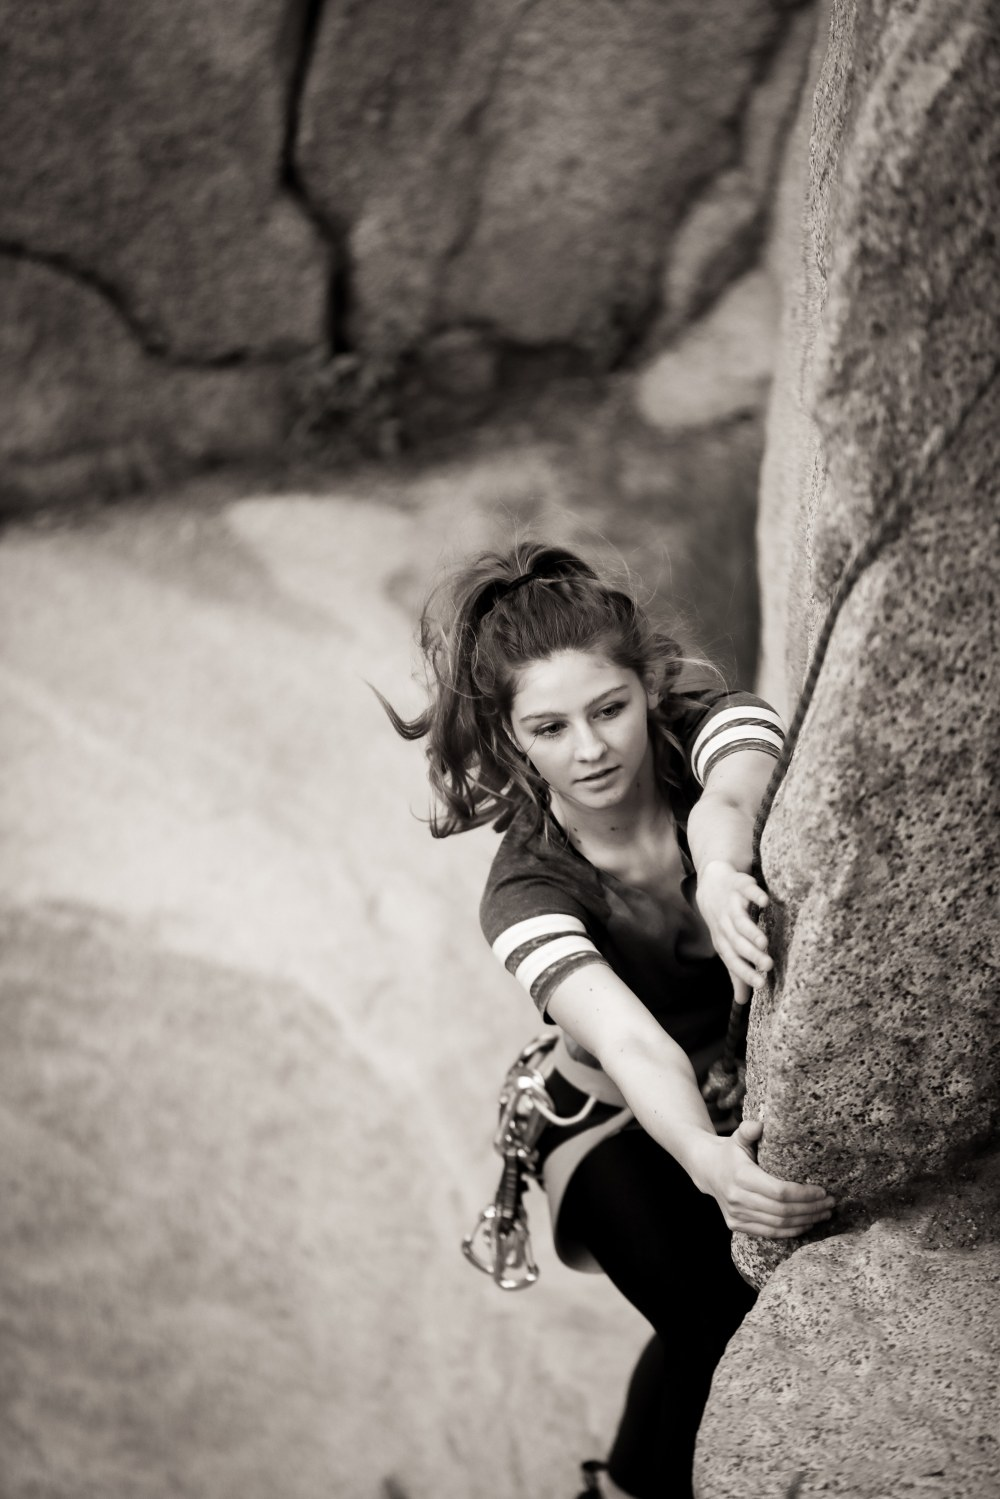 highland_highschool_senior_portraits_bakersfield_ca_kern_river_rock_climbing_tierra_by_cassia_karin_photography_favorites-34